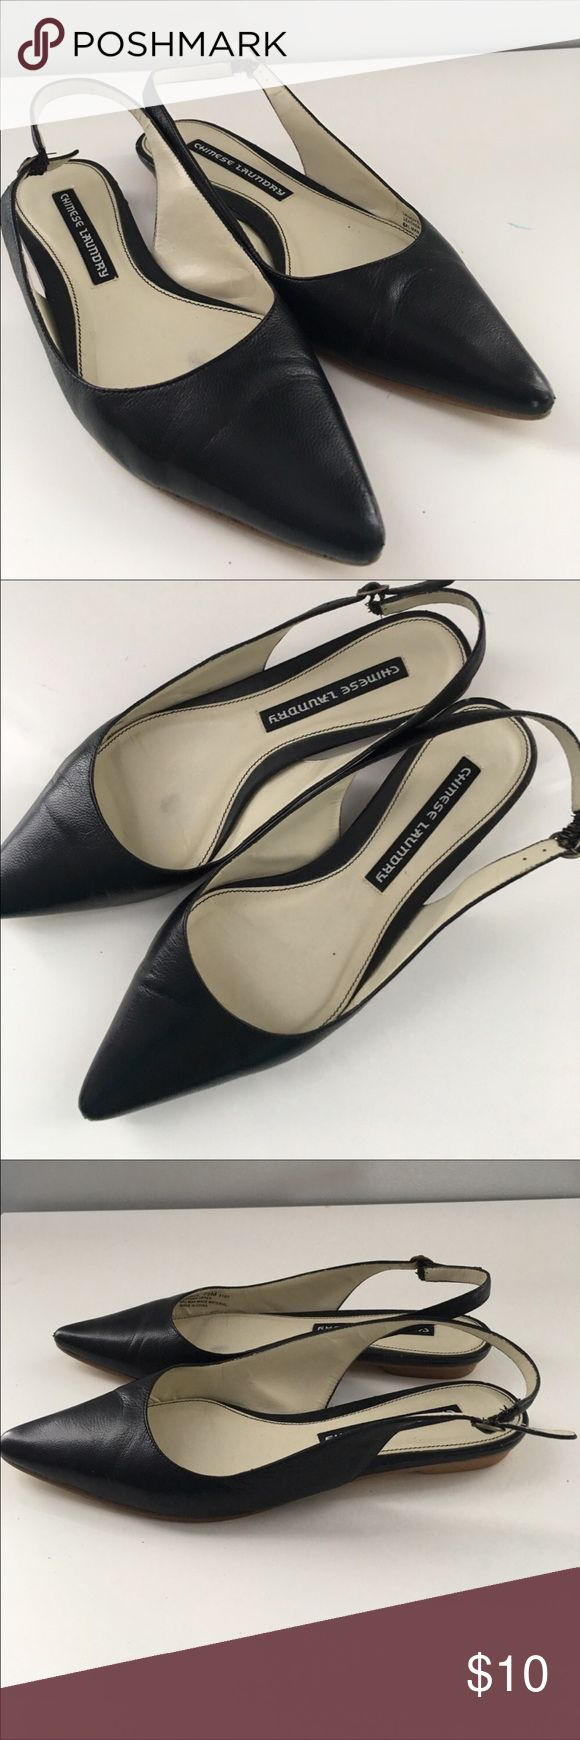 🌺 Chinese Laundry Flats 🌺 These beautiful flats are in good condition and they are by Chinese Laundry 🌺 Chinese Laundry Shoes